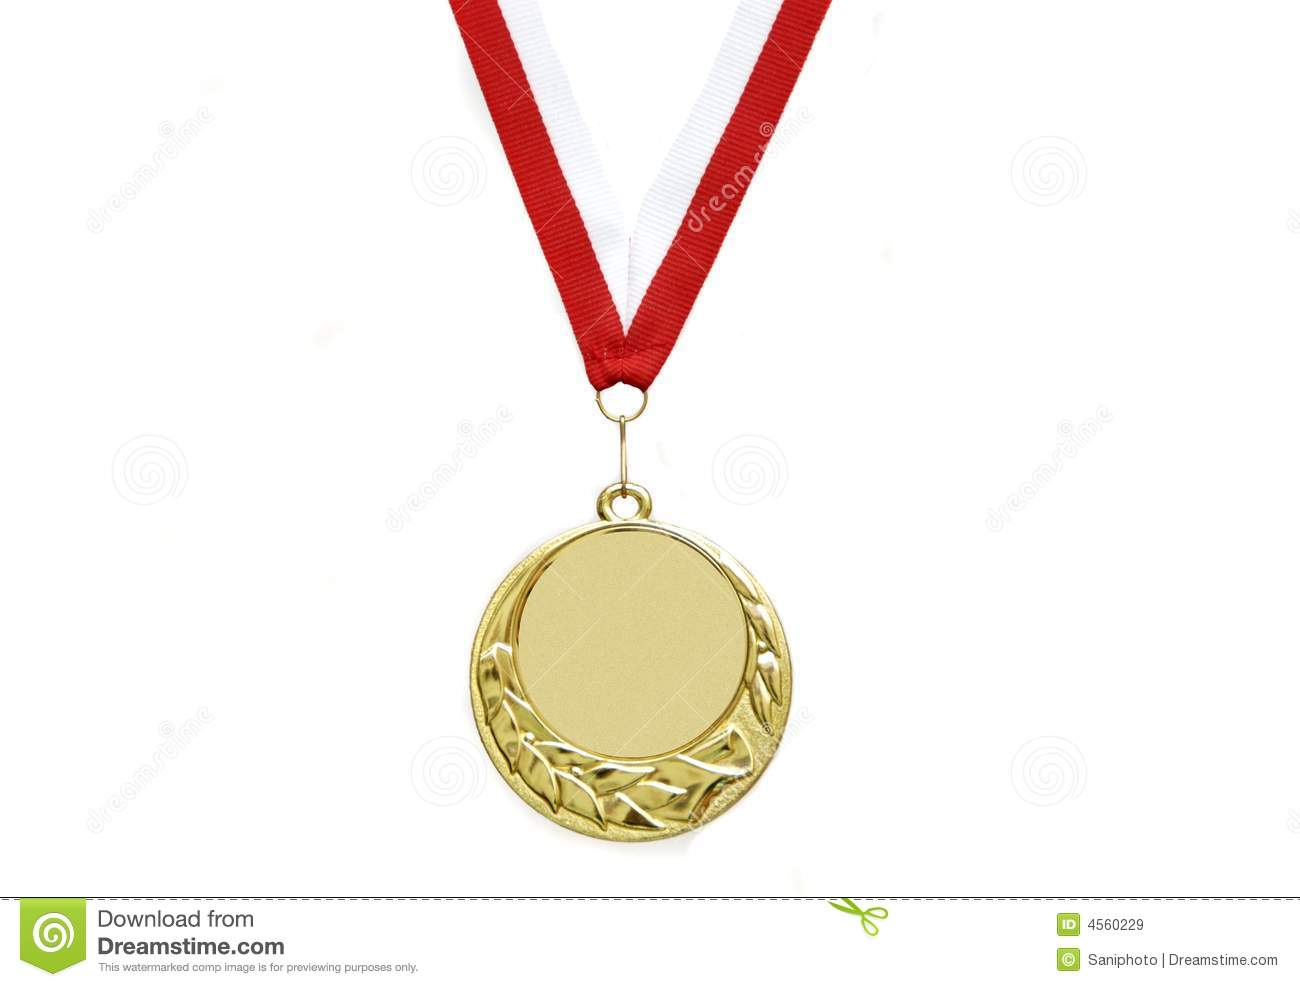 Gold medal with ribbon isolated over white background.